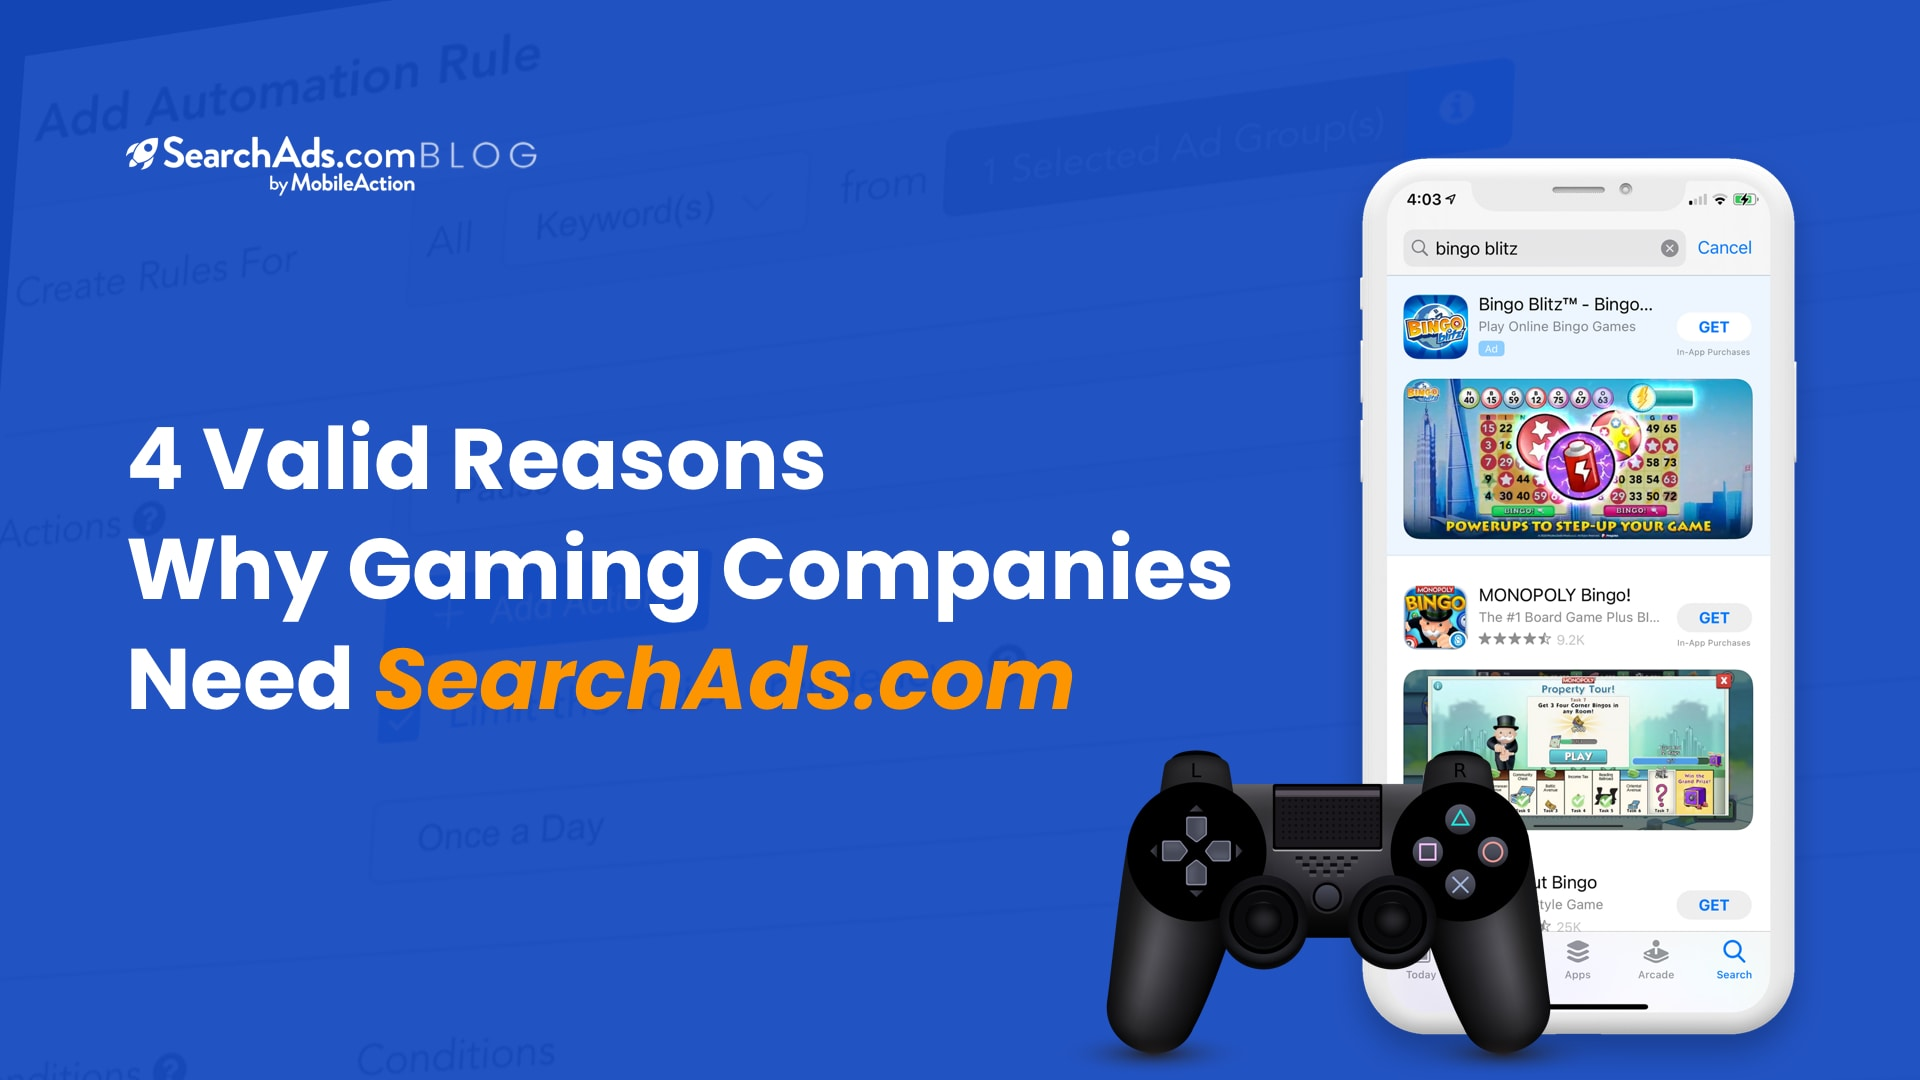 4 valid reasons why gaming companies need searchads.com